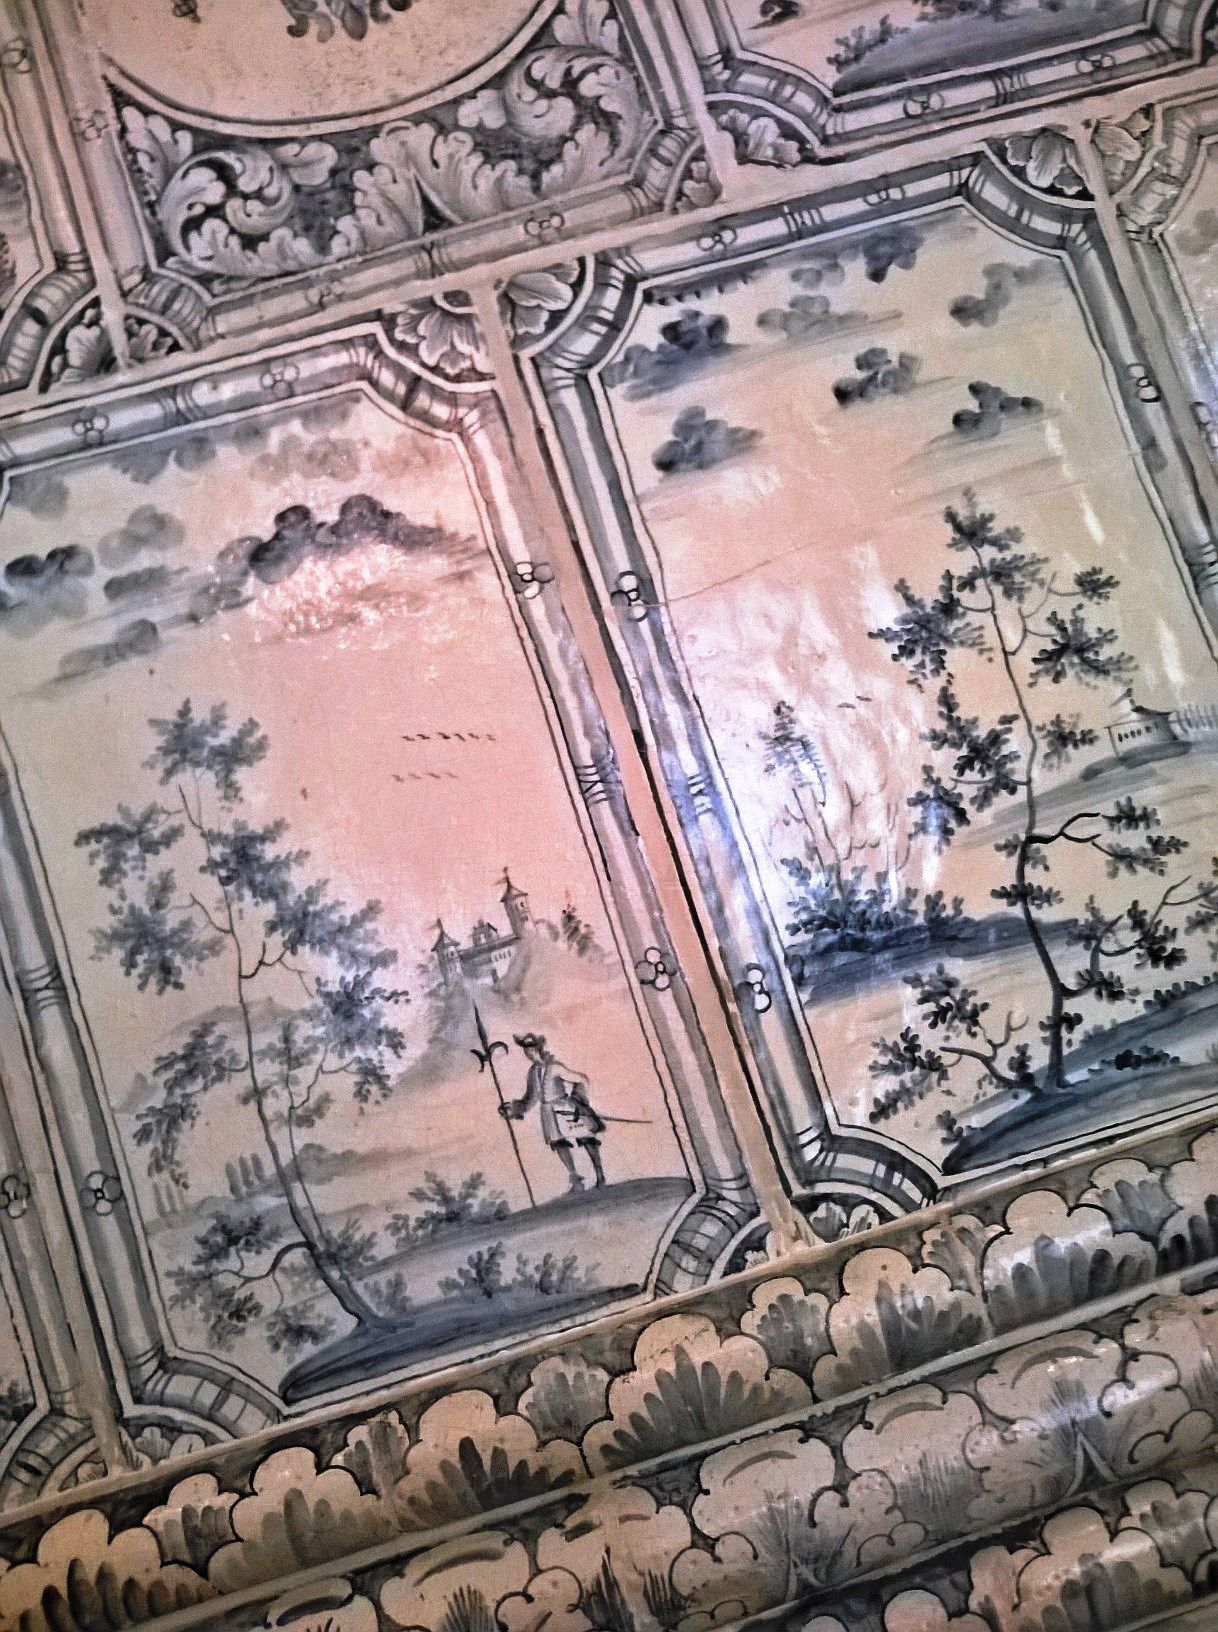 Lovely Ceramic Tiles In Kadriorg Palace, Tallinn